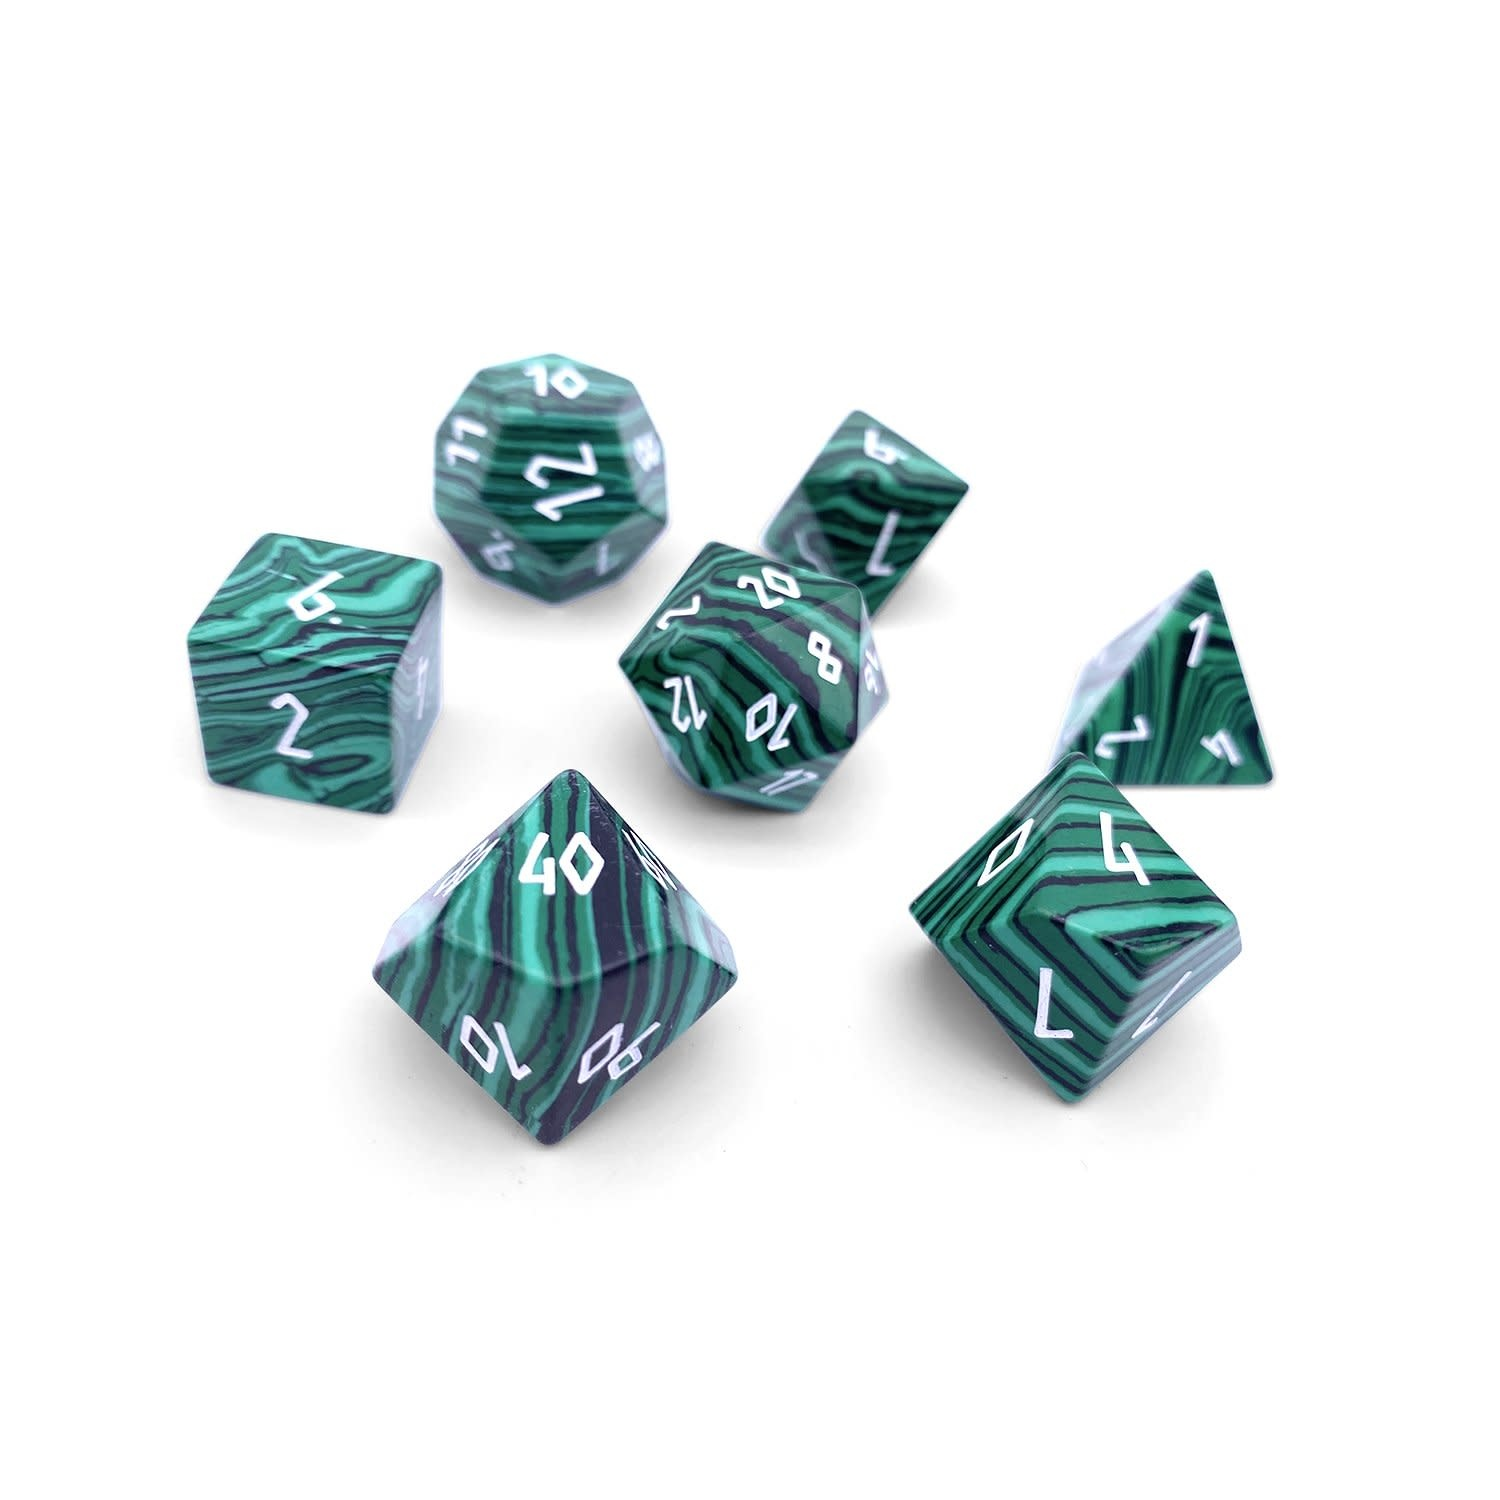 Norse Foundry Gemstone Dice Malachite Table Top Cafe Eldritch foundry is an character creator for customizing your tabletop miniatures. norse foundry gemstone dice malachite